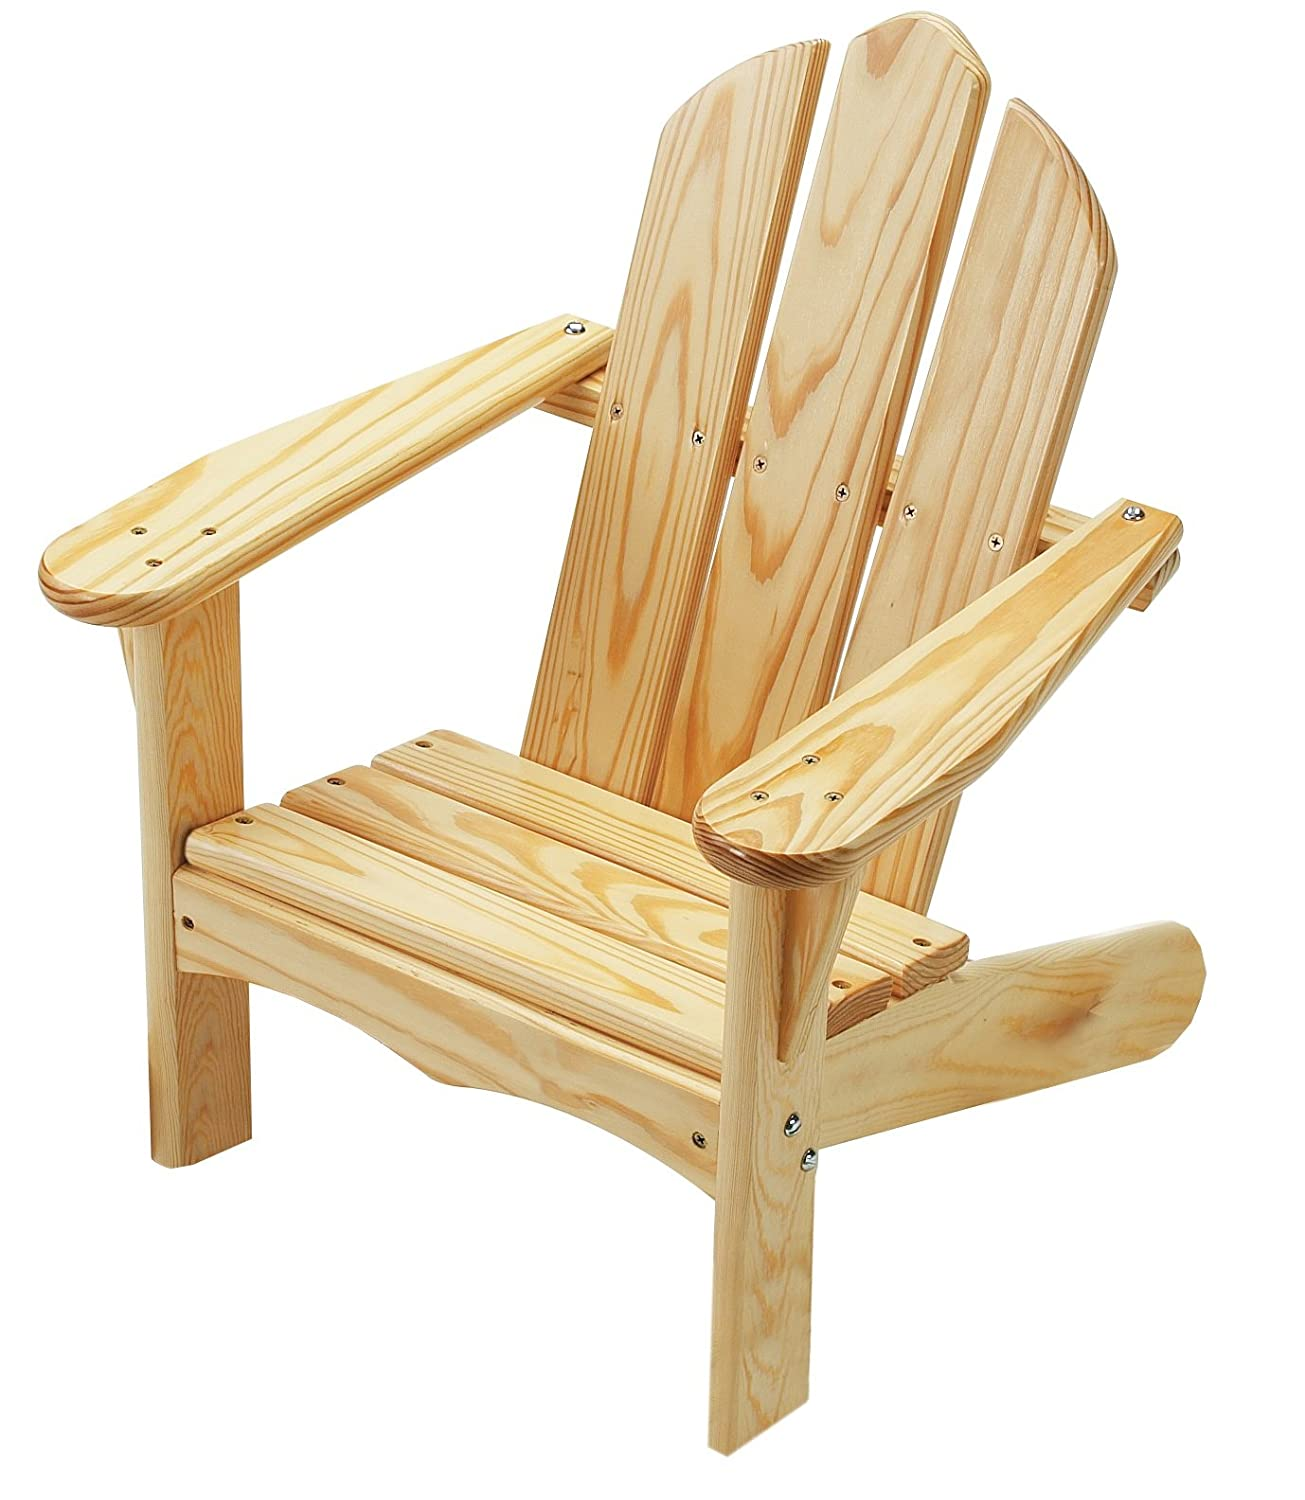 Amazon.com: Little Colorado Childu0027s Adirondack Chair  Unfinished: Toys U0026  Games